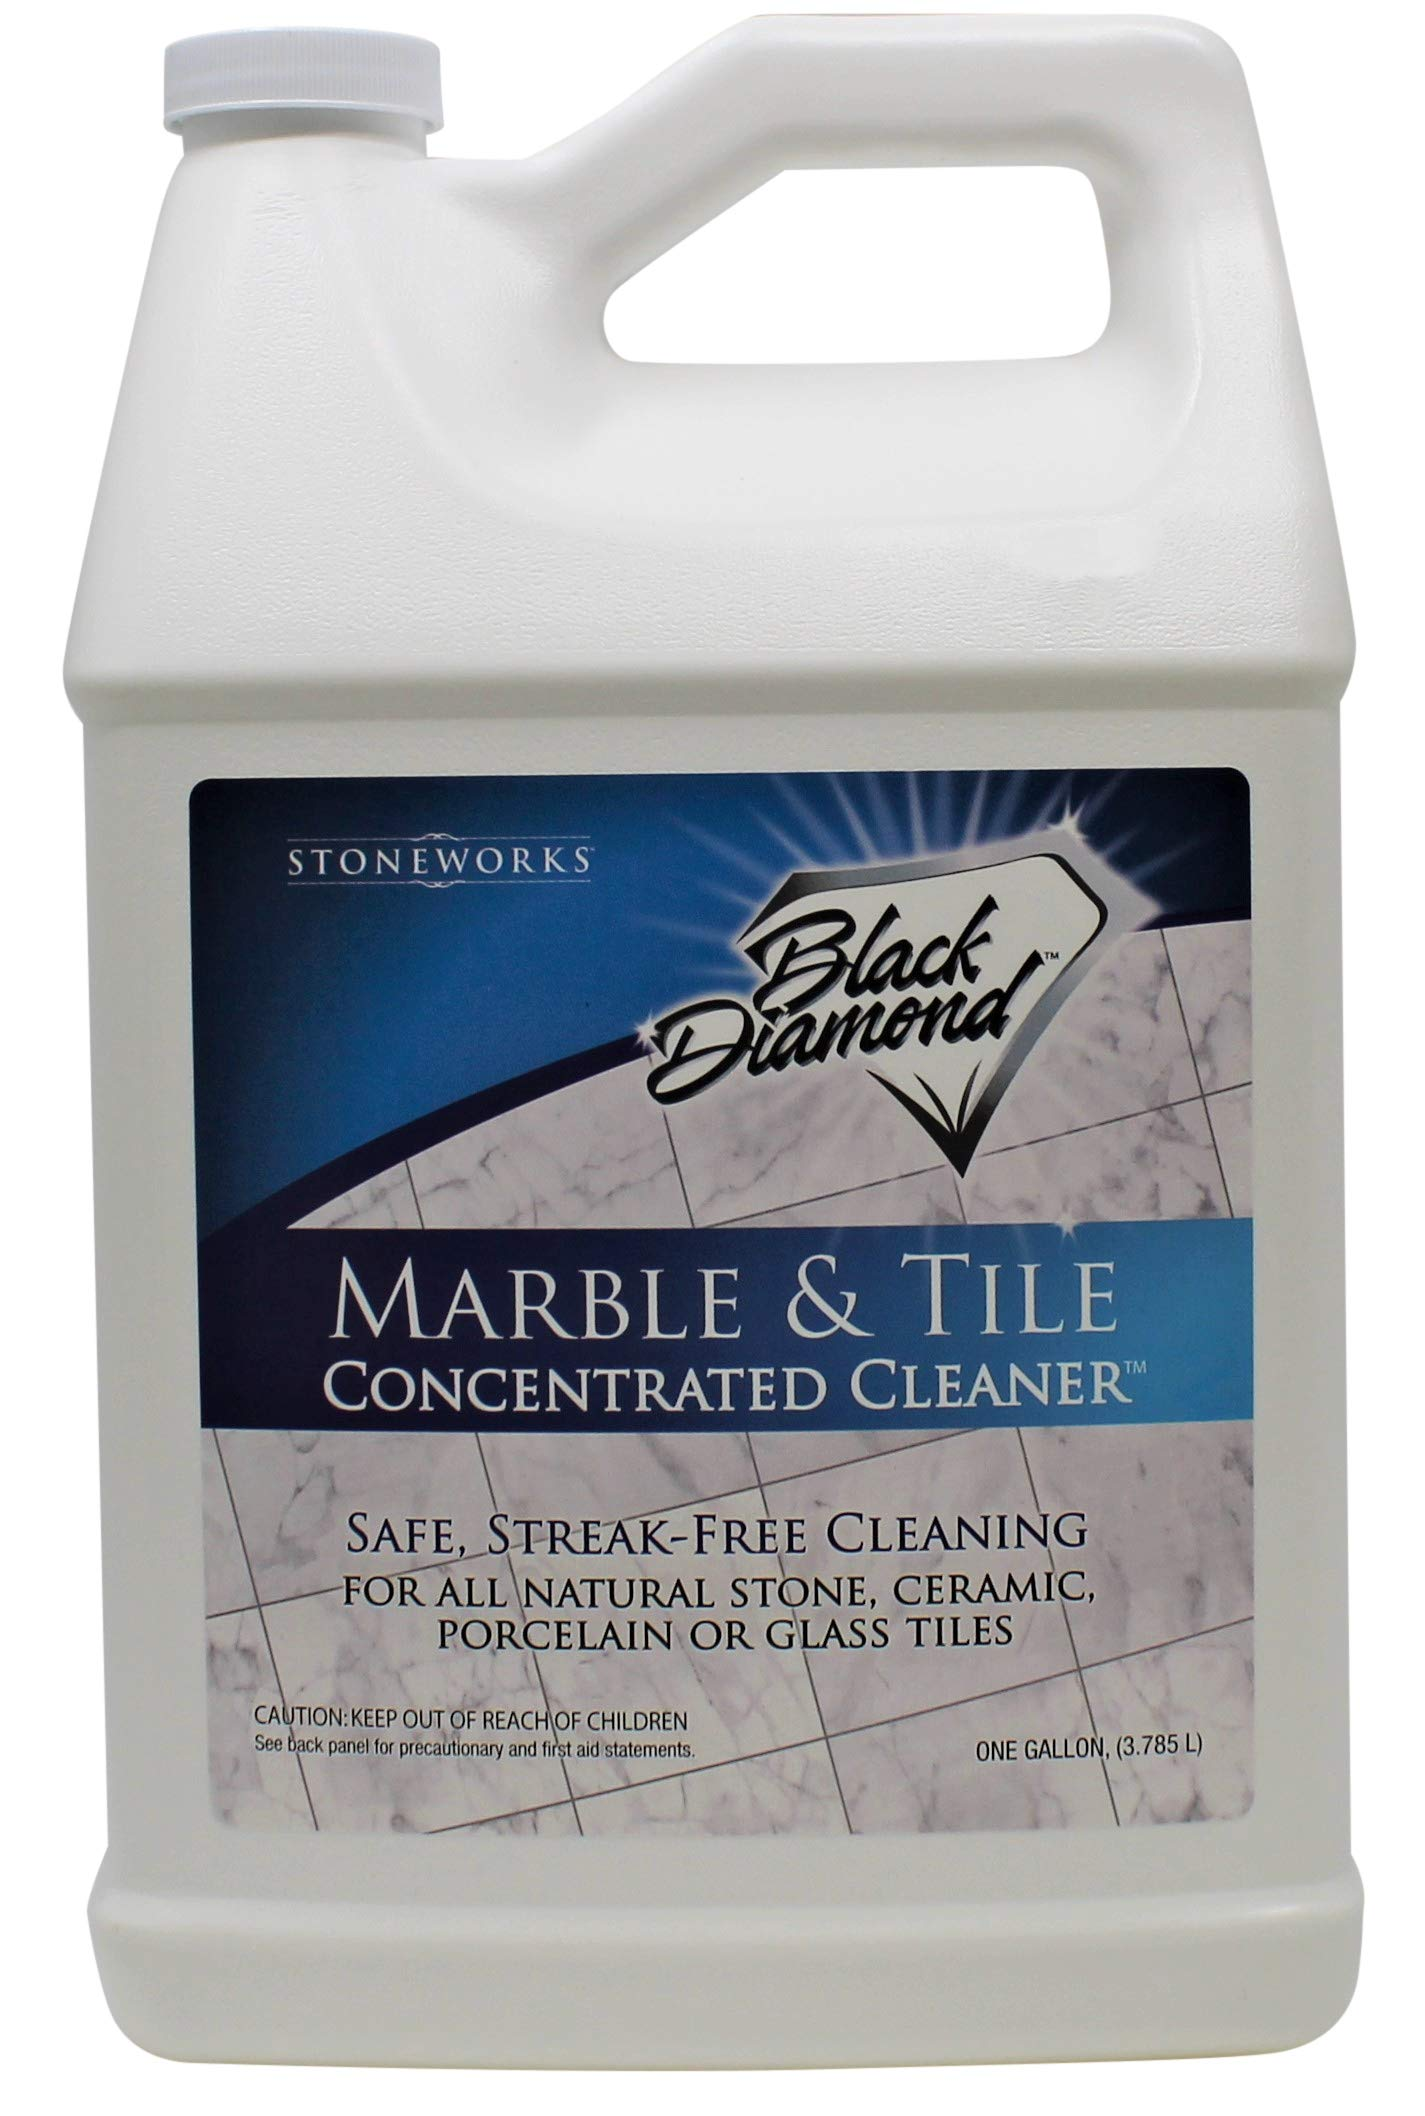 MARBLE & TILE FLOOR CLEANER. Great for Ceramic, Porcelain, Granite, Natural Stone, Vinyl and Brick. No-rinse Concentrate. (1-Gallon)